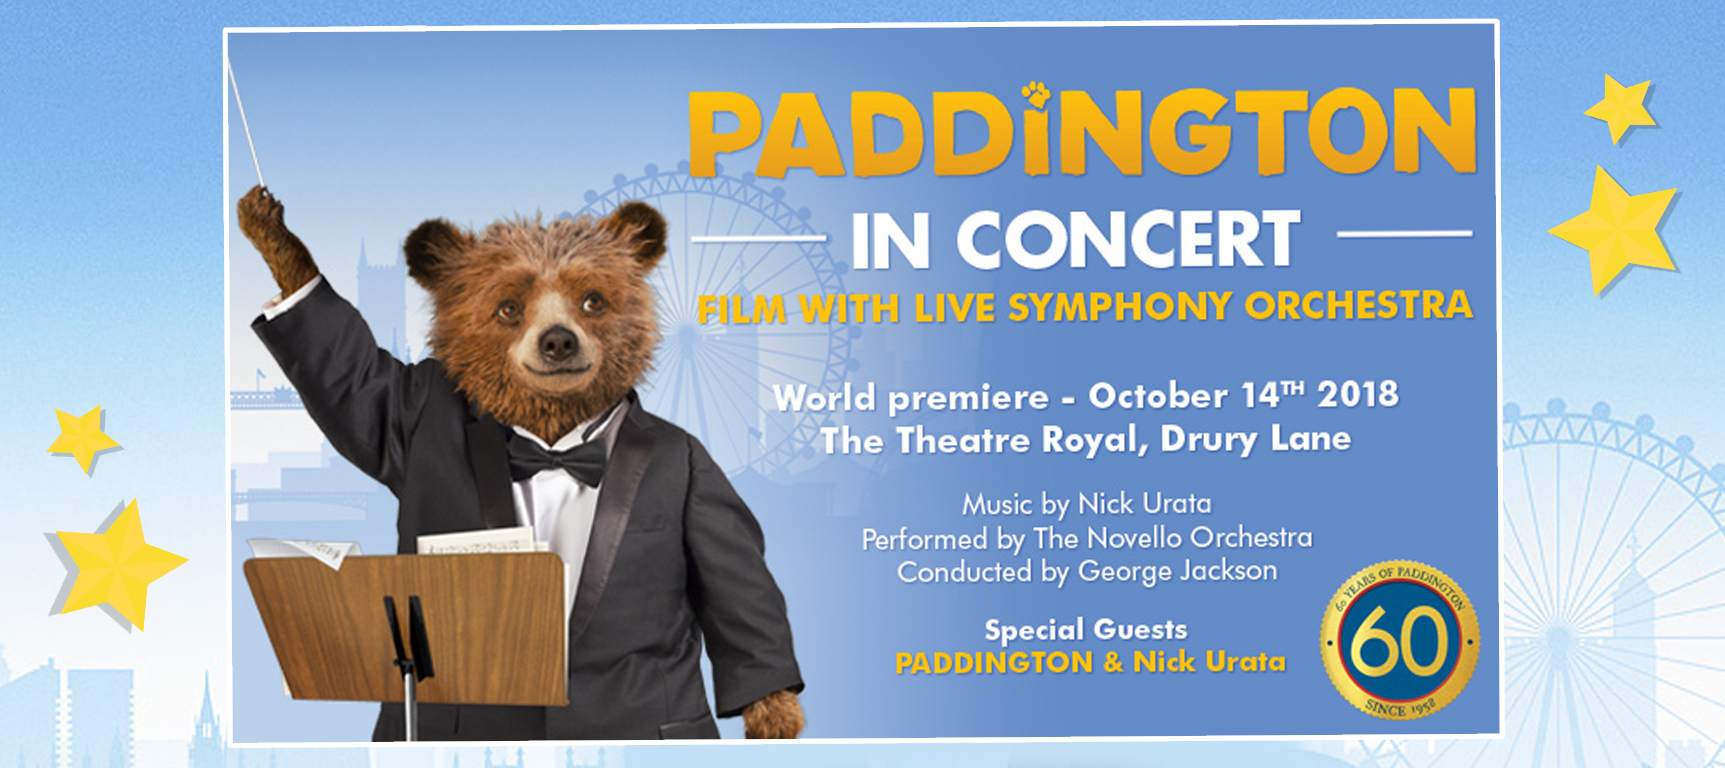 A Family Ticket to see Paddington in Concert